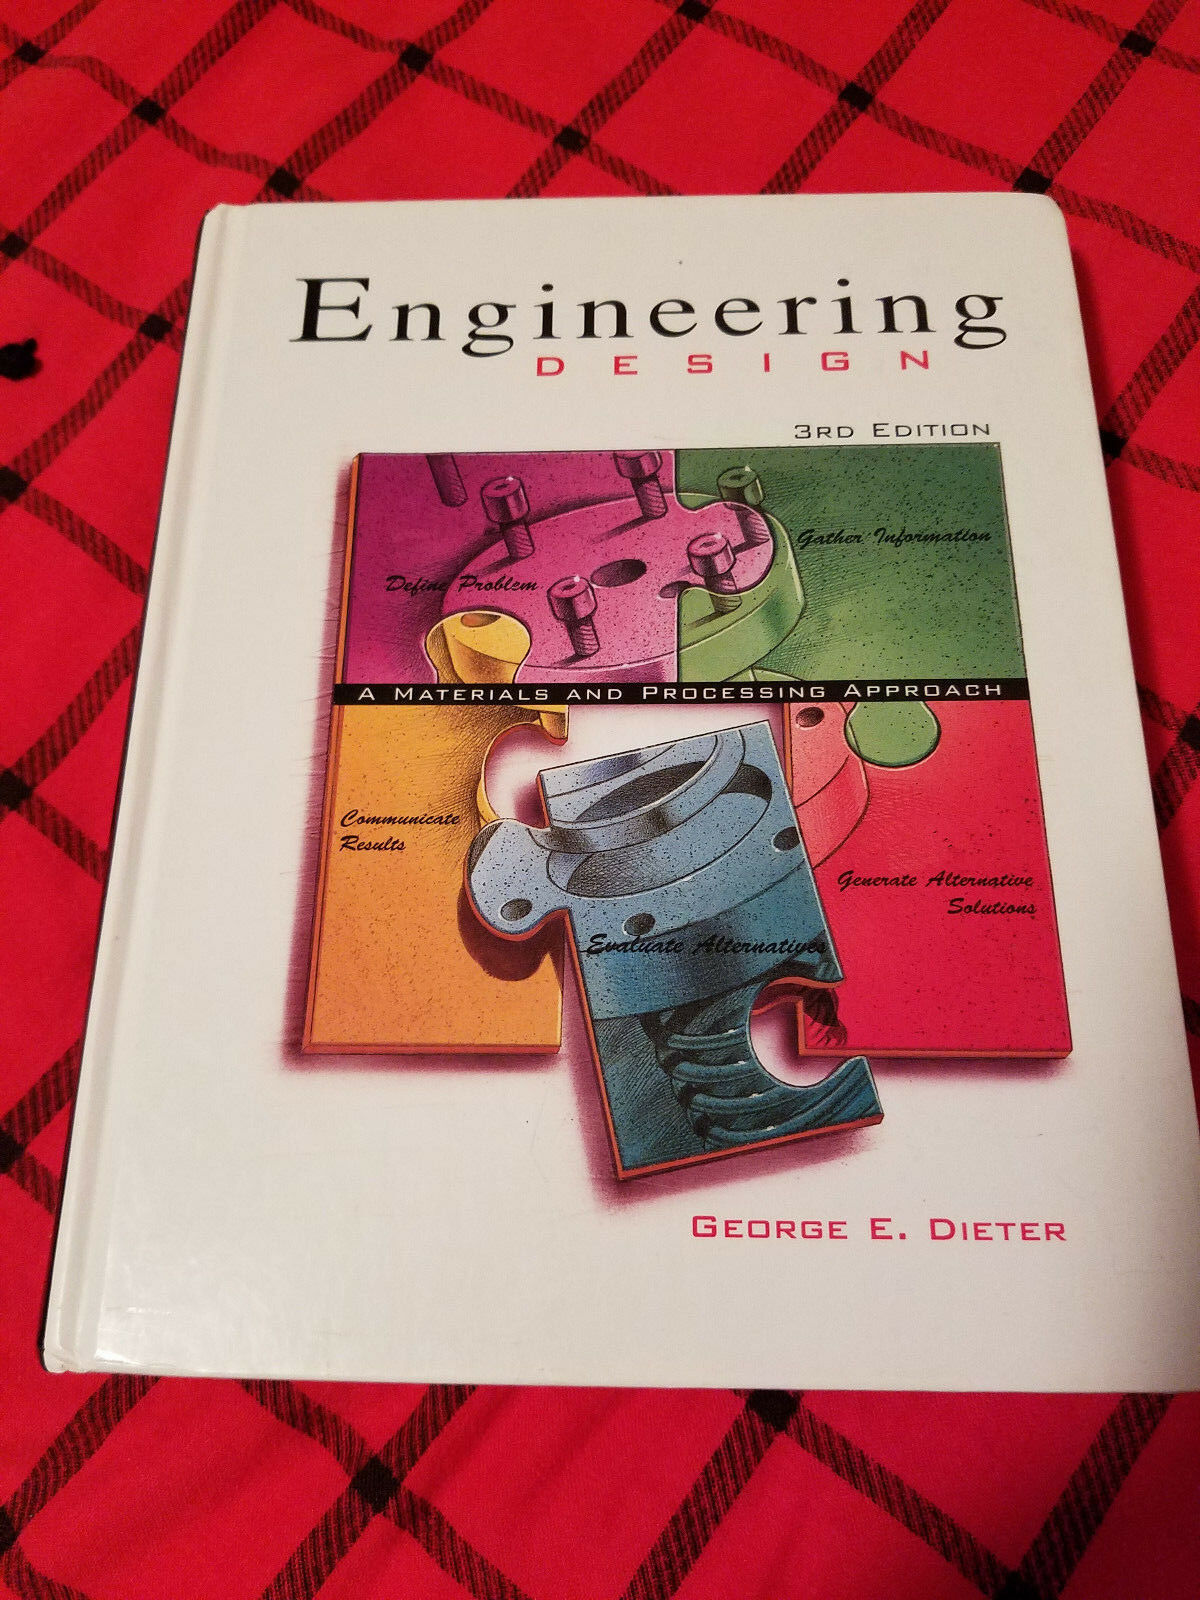 Mcgraw Hill Series In Mechanical Engineering Engineering Design A Materials And Processing Approach By George Ellwood Dieter 1999 Paperback Revised For Sale Online Ebay